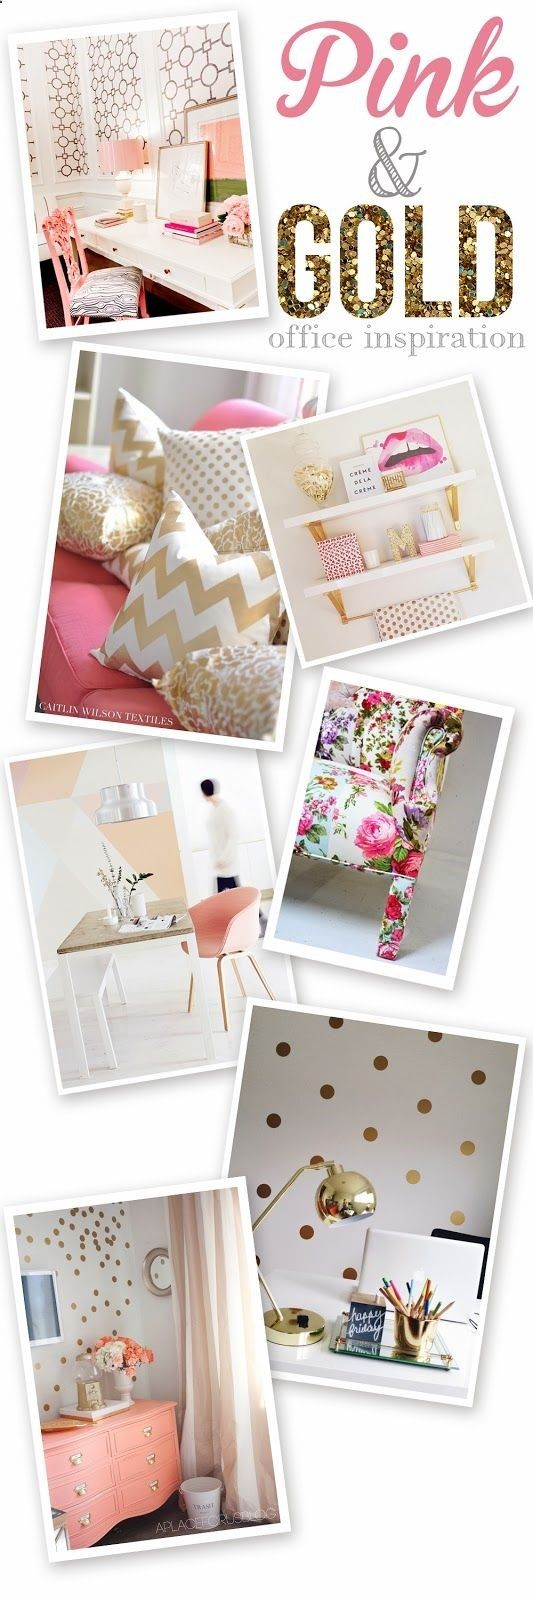 Pink and Gold Office Inspiration. Use burgundy instead of pink. Adding gold